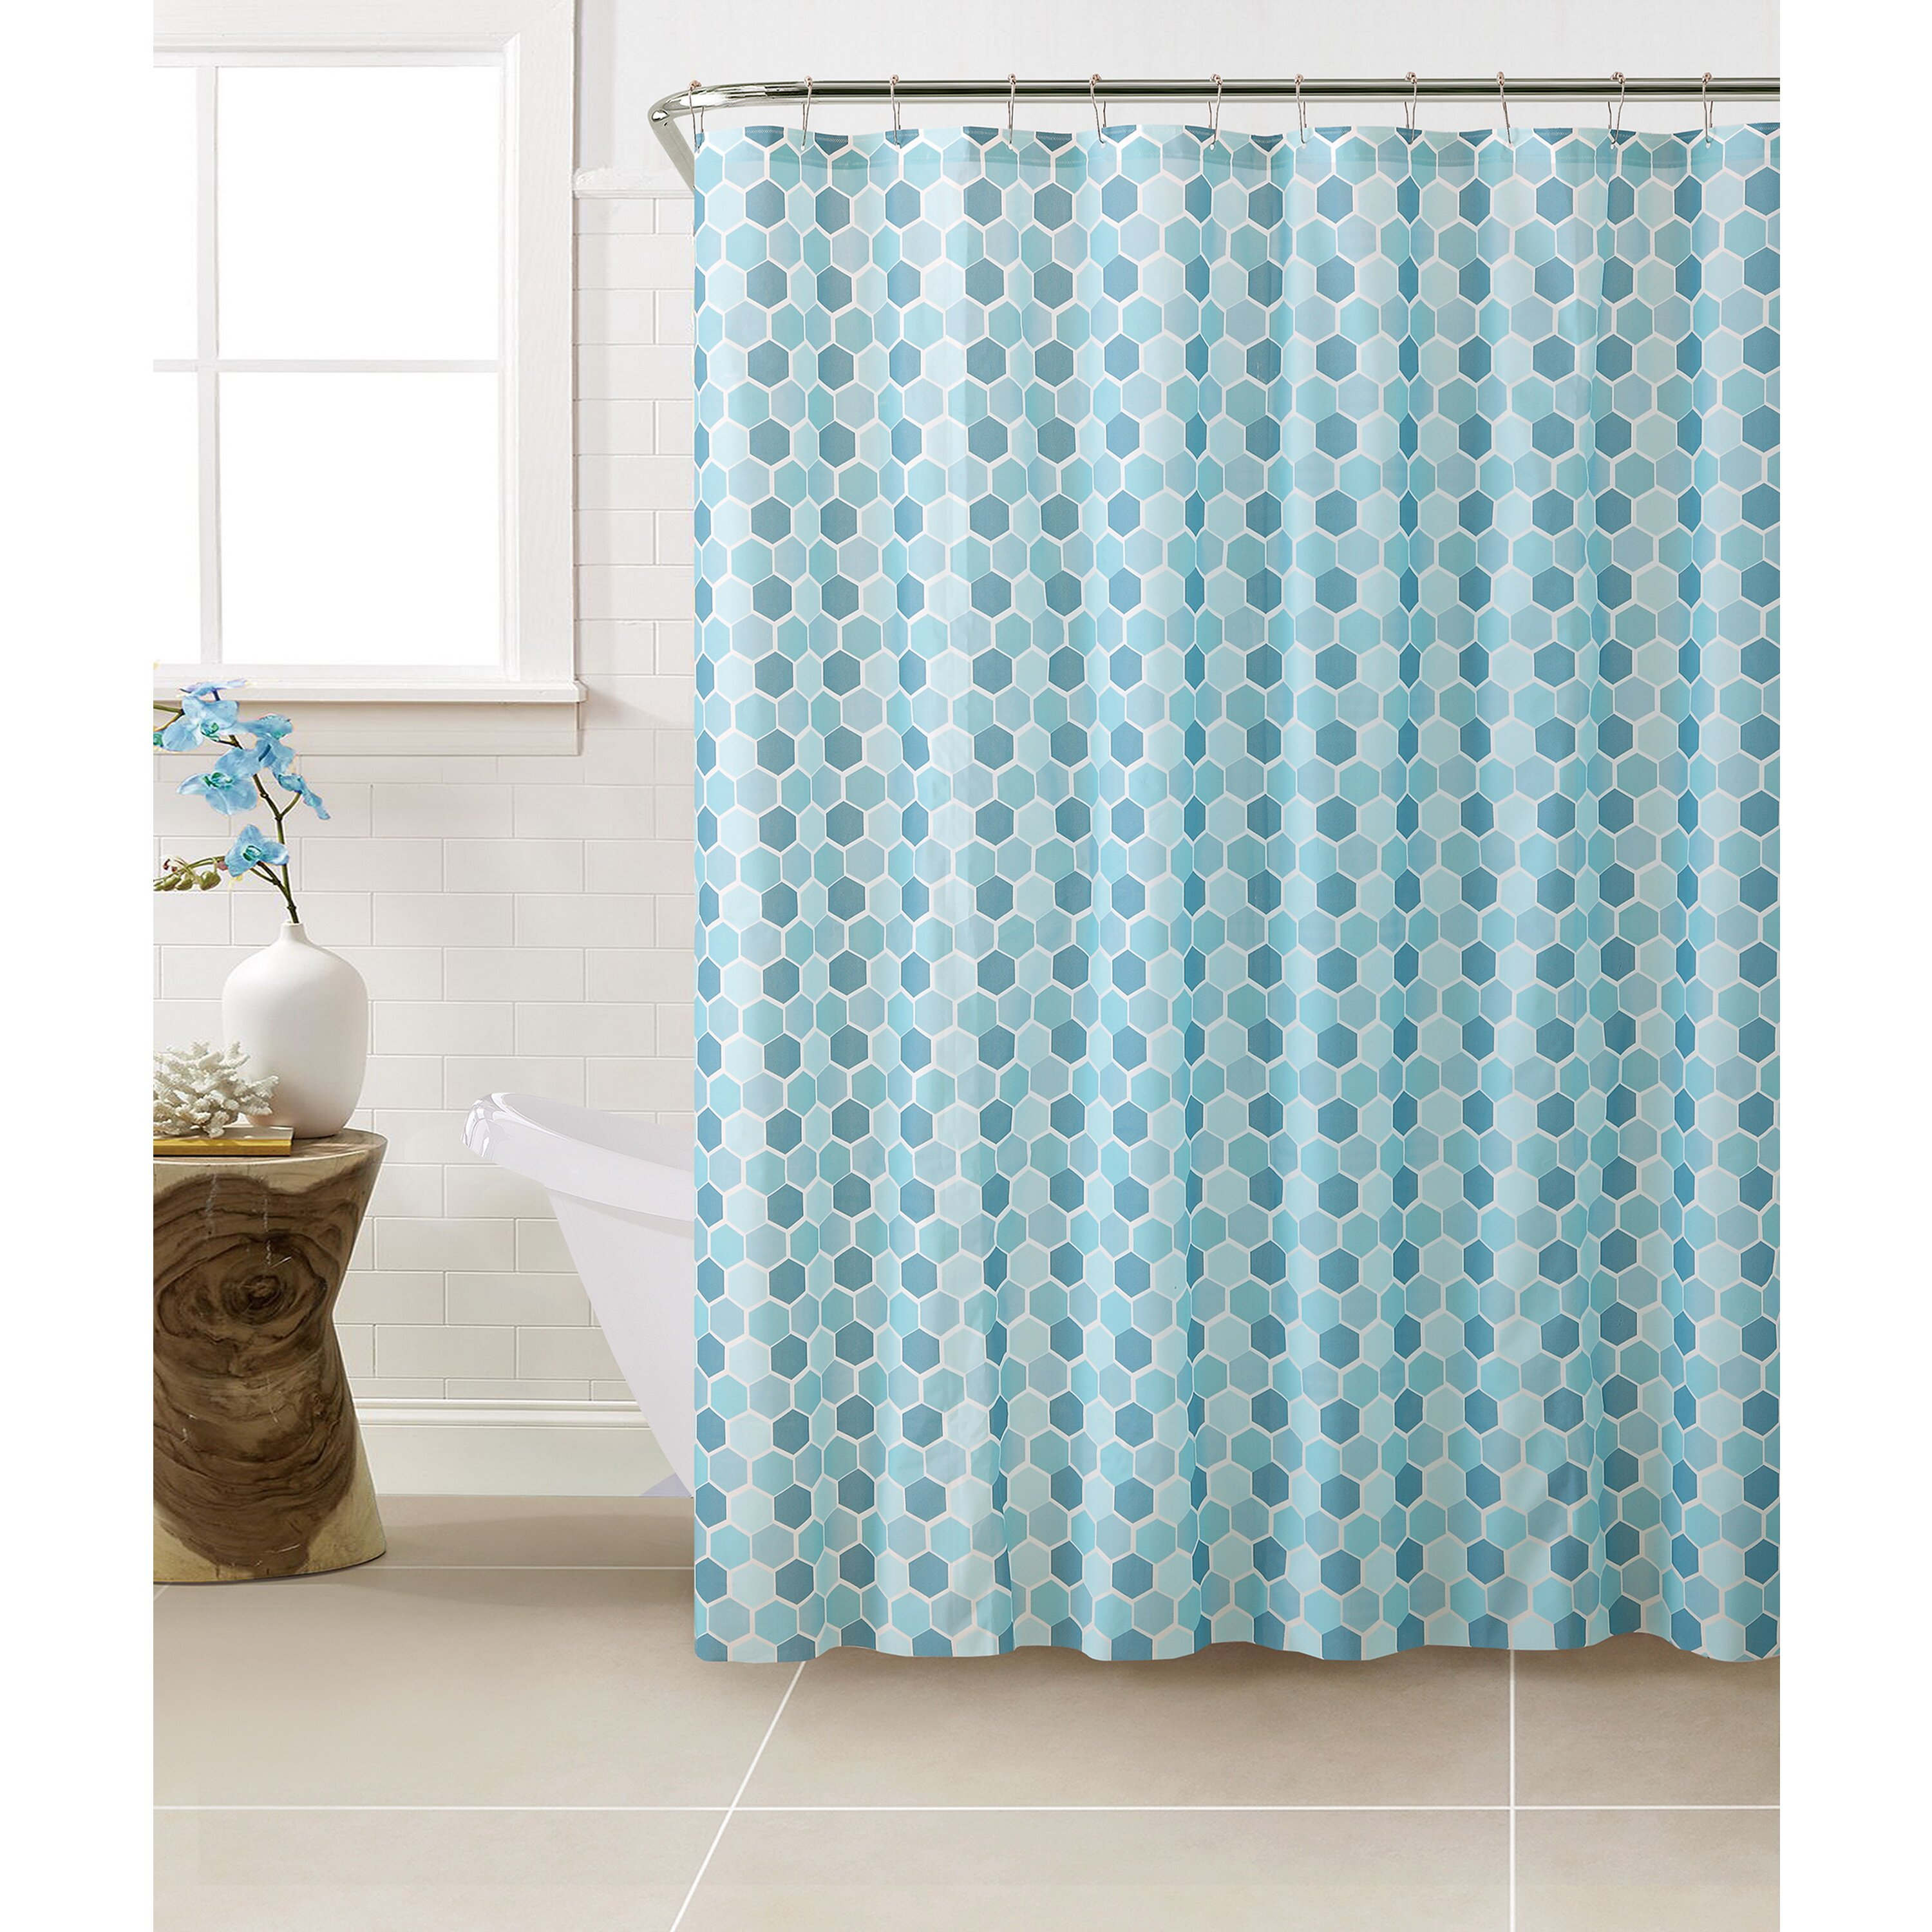 bath bliss peva hexagon design shower curtain set wayfair